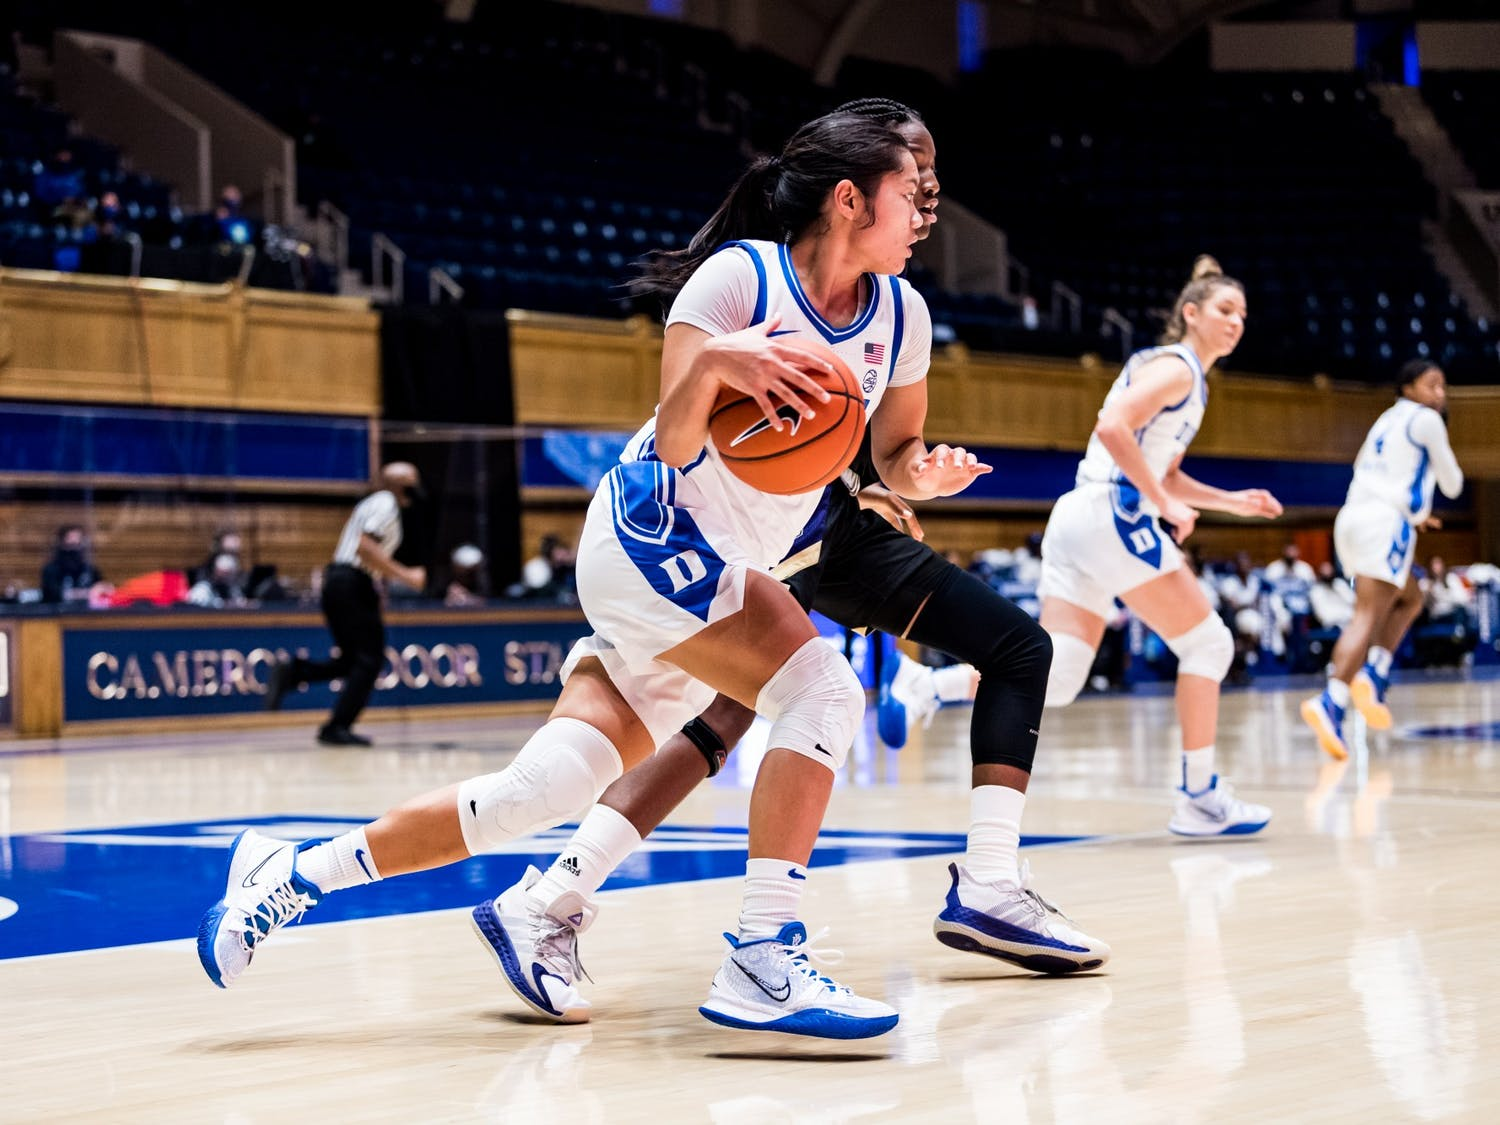 Freshman point guard Vanessa de Jesus has quickly proven herself to be one of Duke's go-to options.